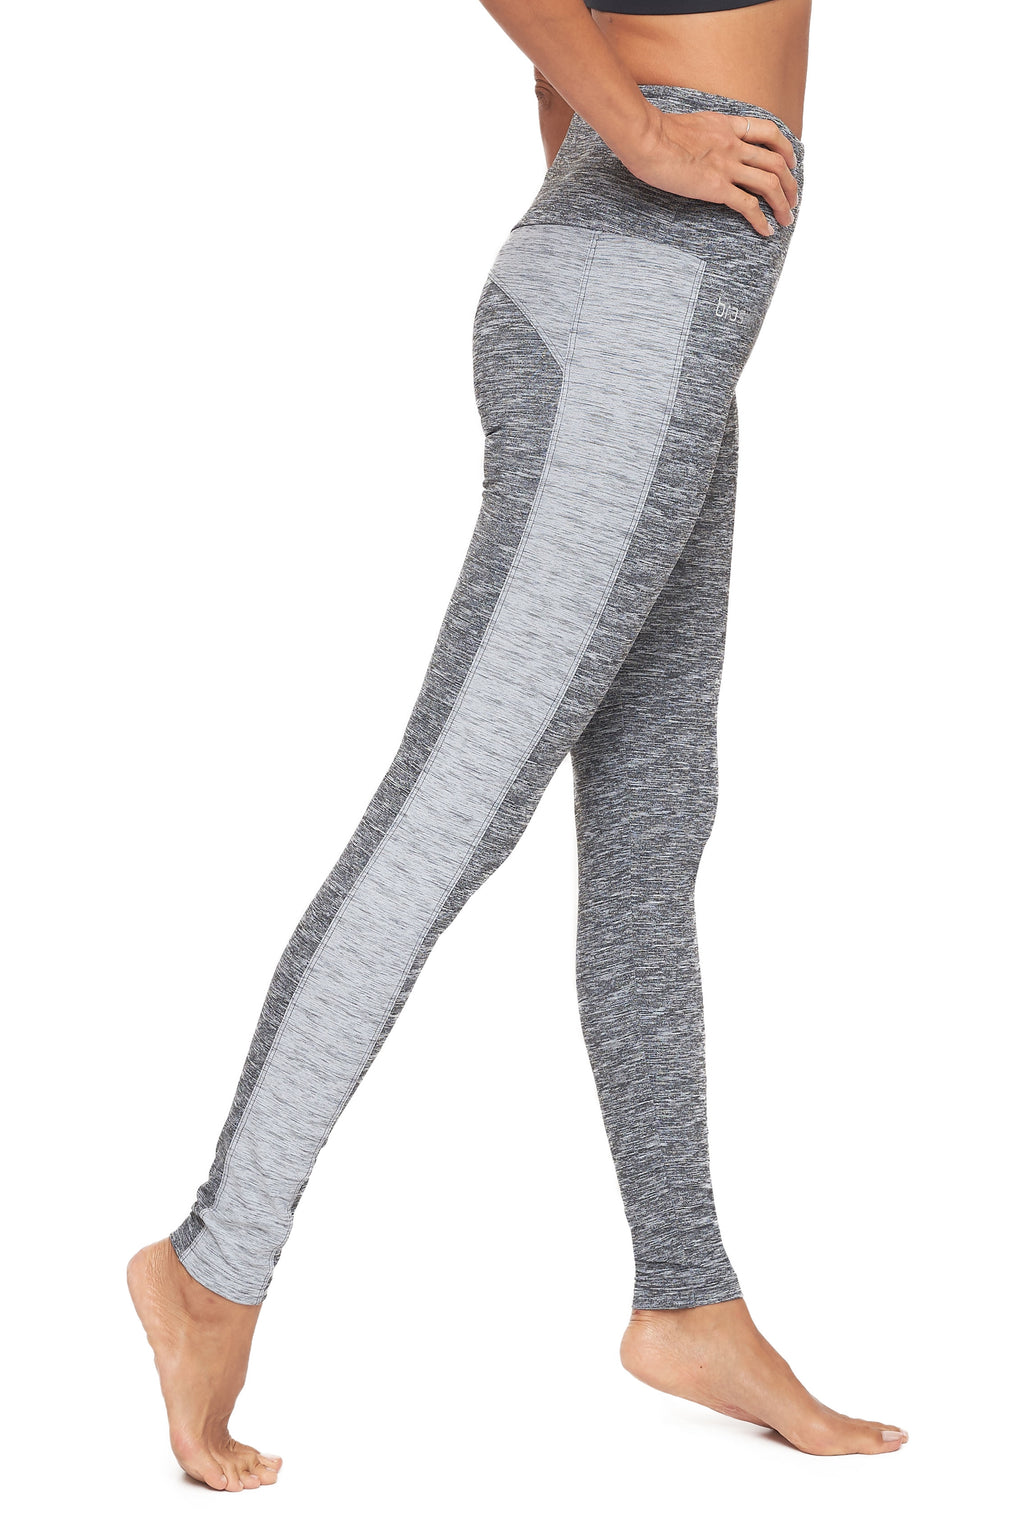 Turin High Waisted Full Length Legging